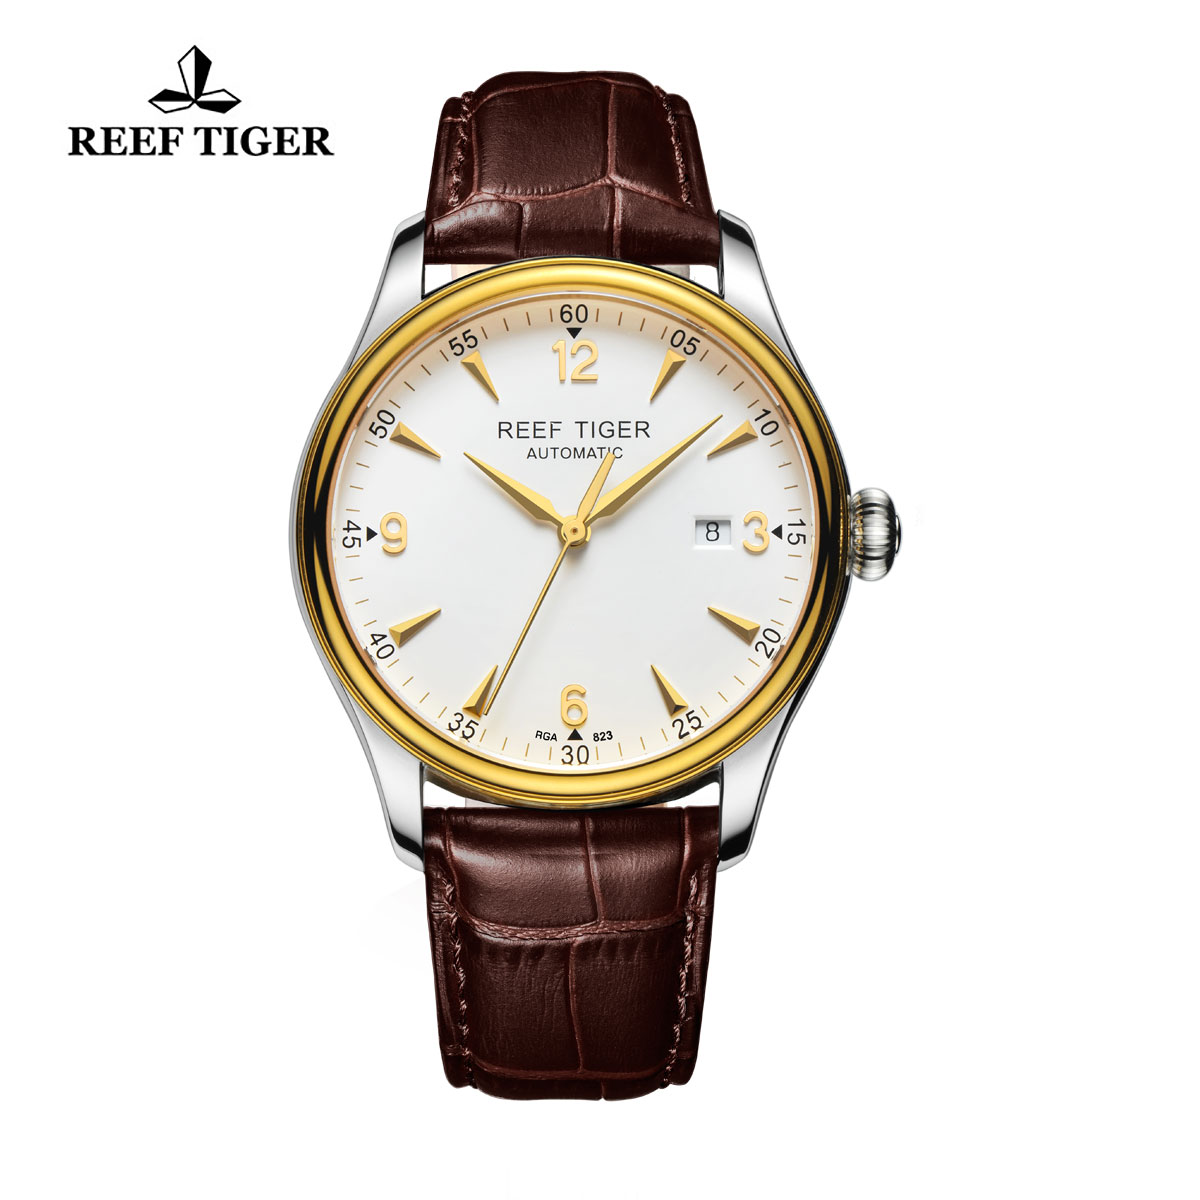 Reef Tiger Heritage Dress Automatic Watch White Dial Calfskin Leather Strap RGA823-TWB